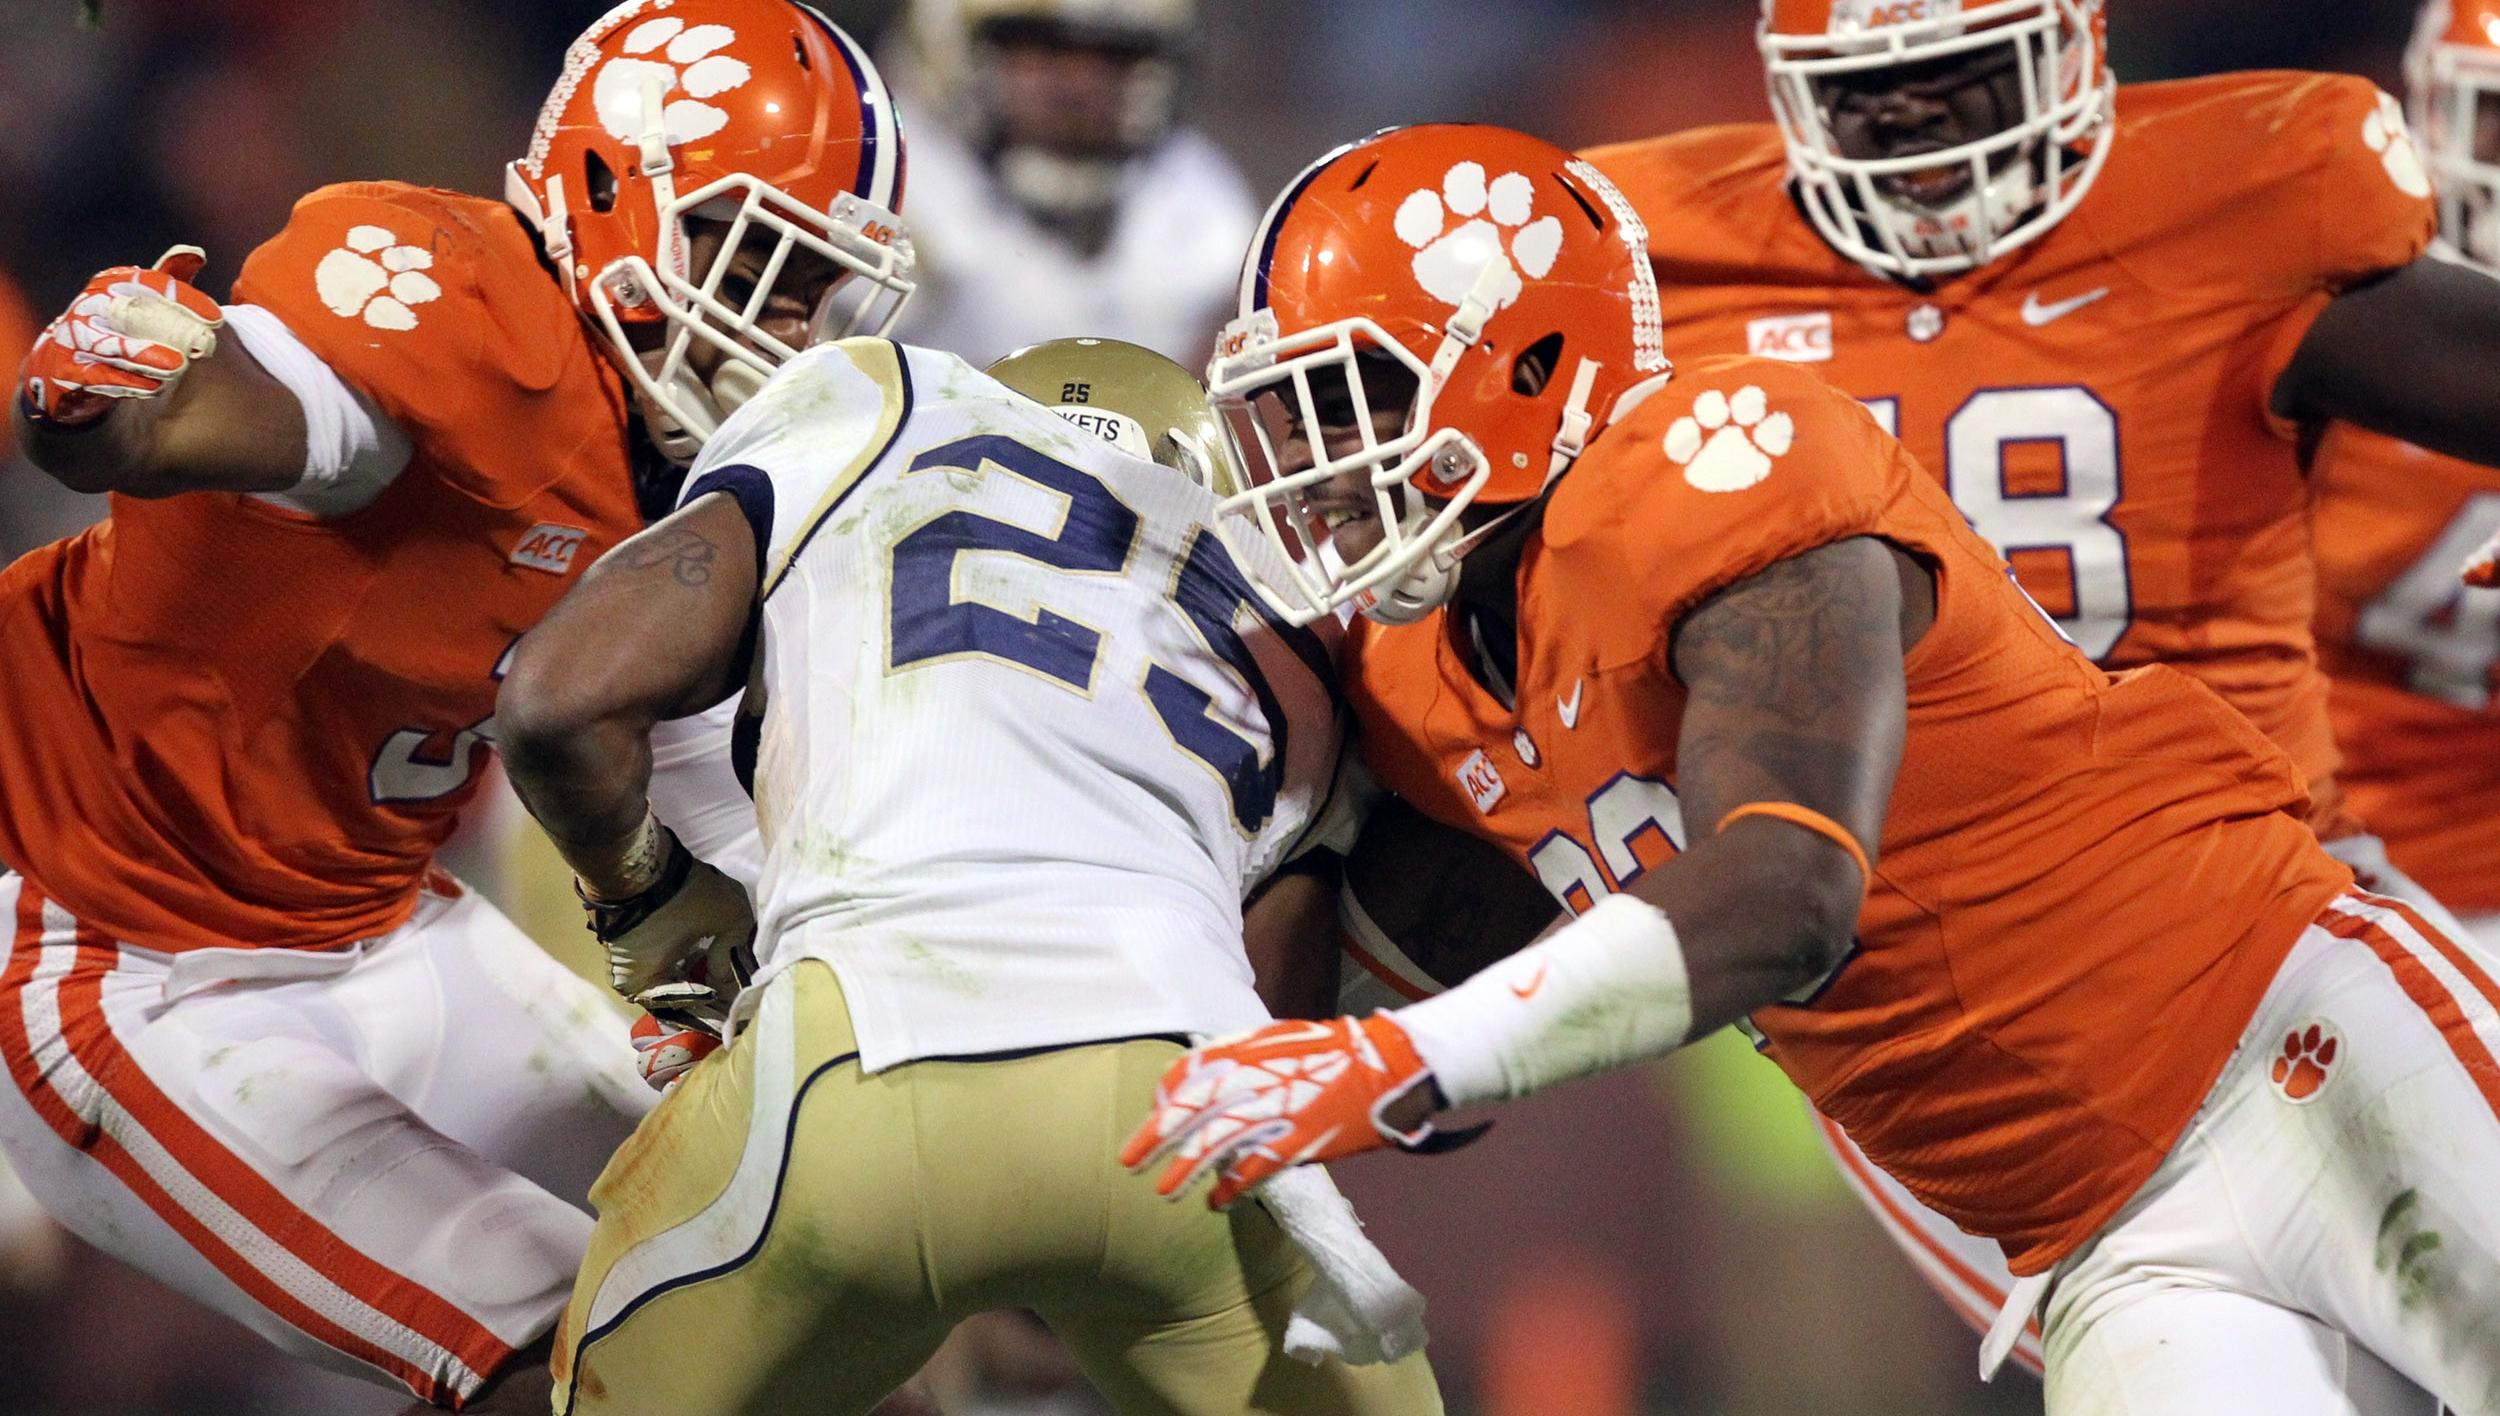 Clemson vs. Georgia Tech Replay Now Available on ClemsonTigers.com